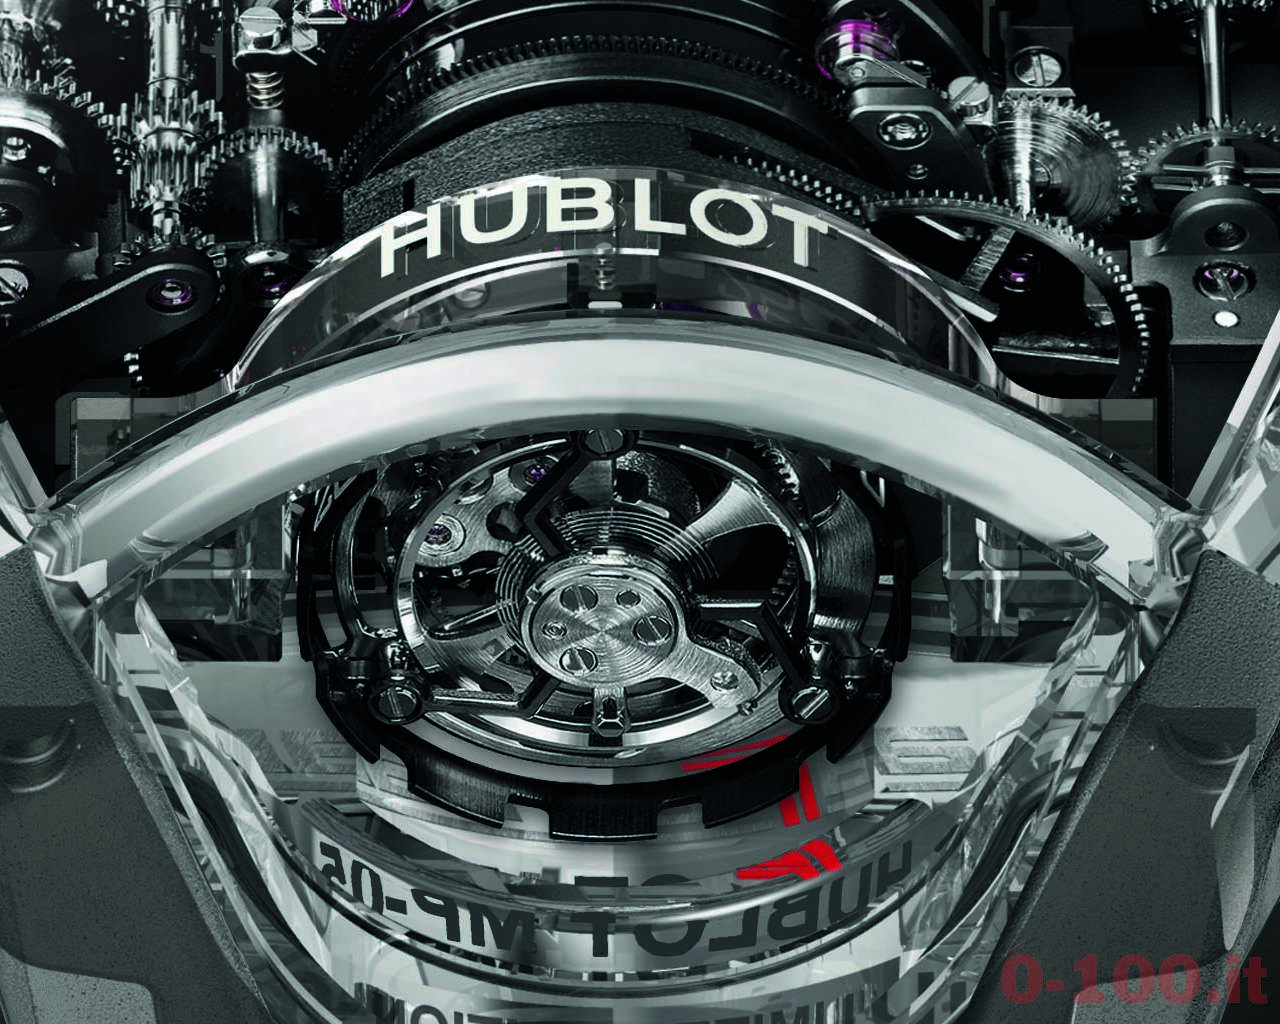 anteprima-baselworld-2016-hublot-mp-05-laferrari-ref-905-jx-0001-rt-limited-edition-prezzo-price_0-1009